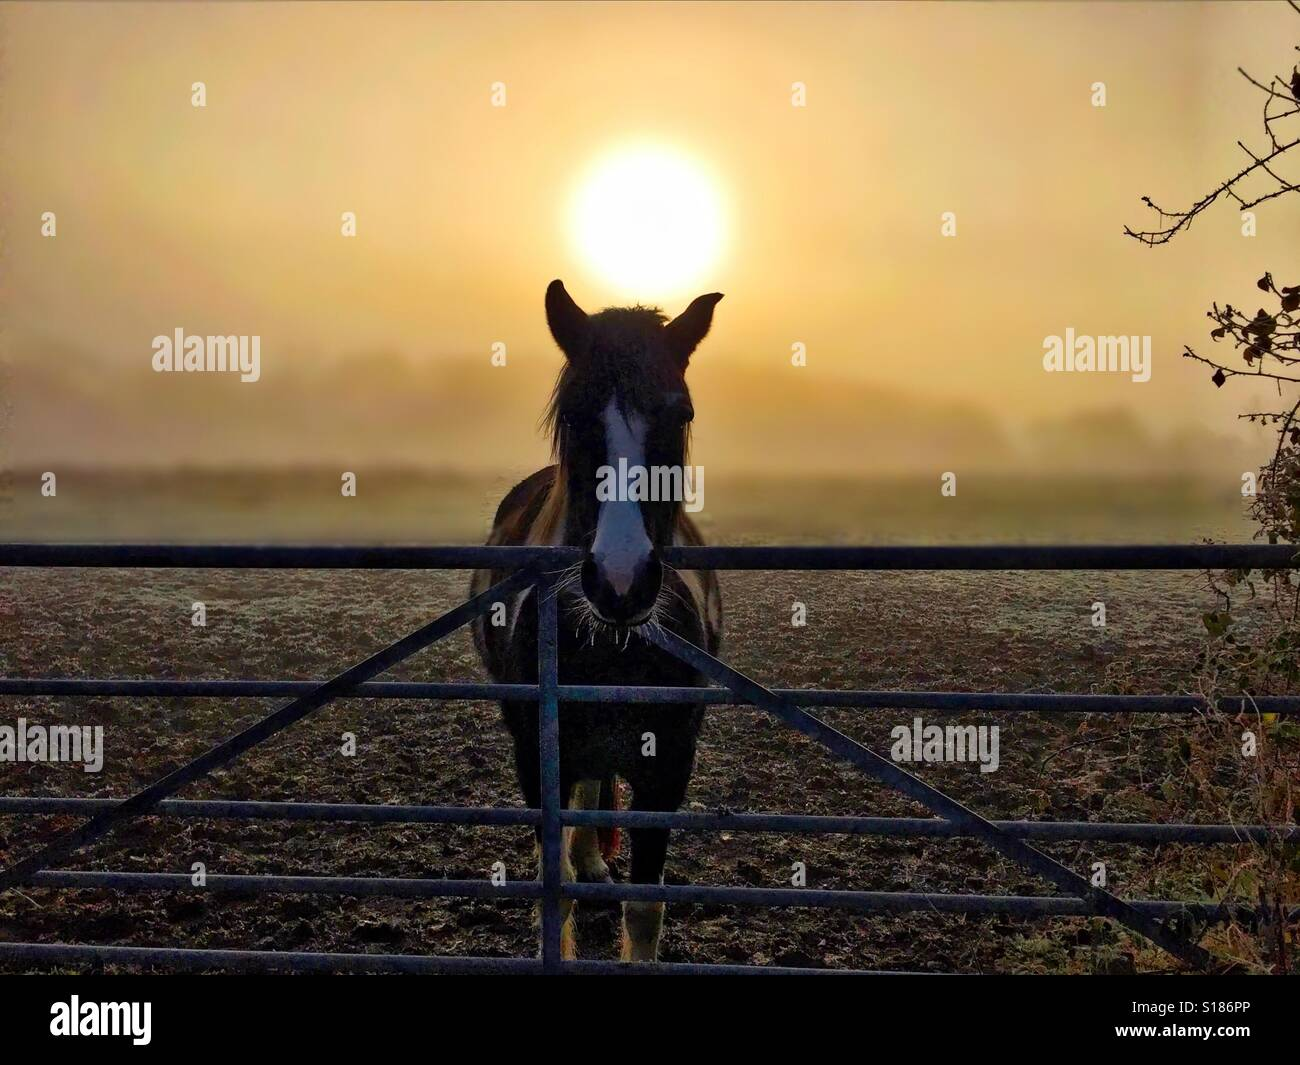 Horse in the golden hour - Stock Image